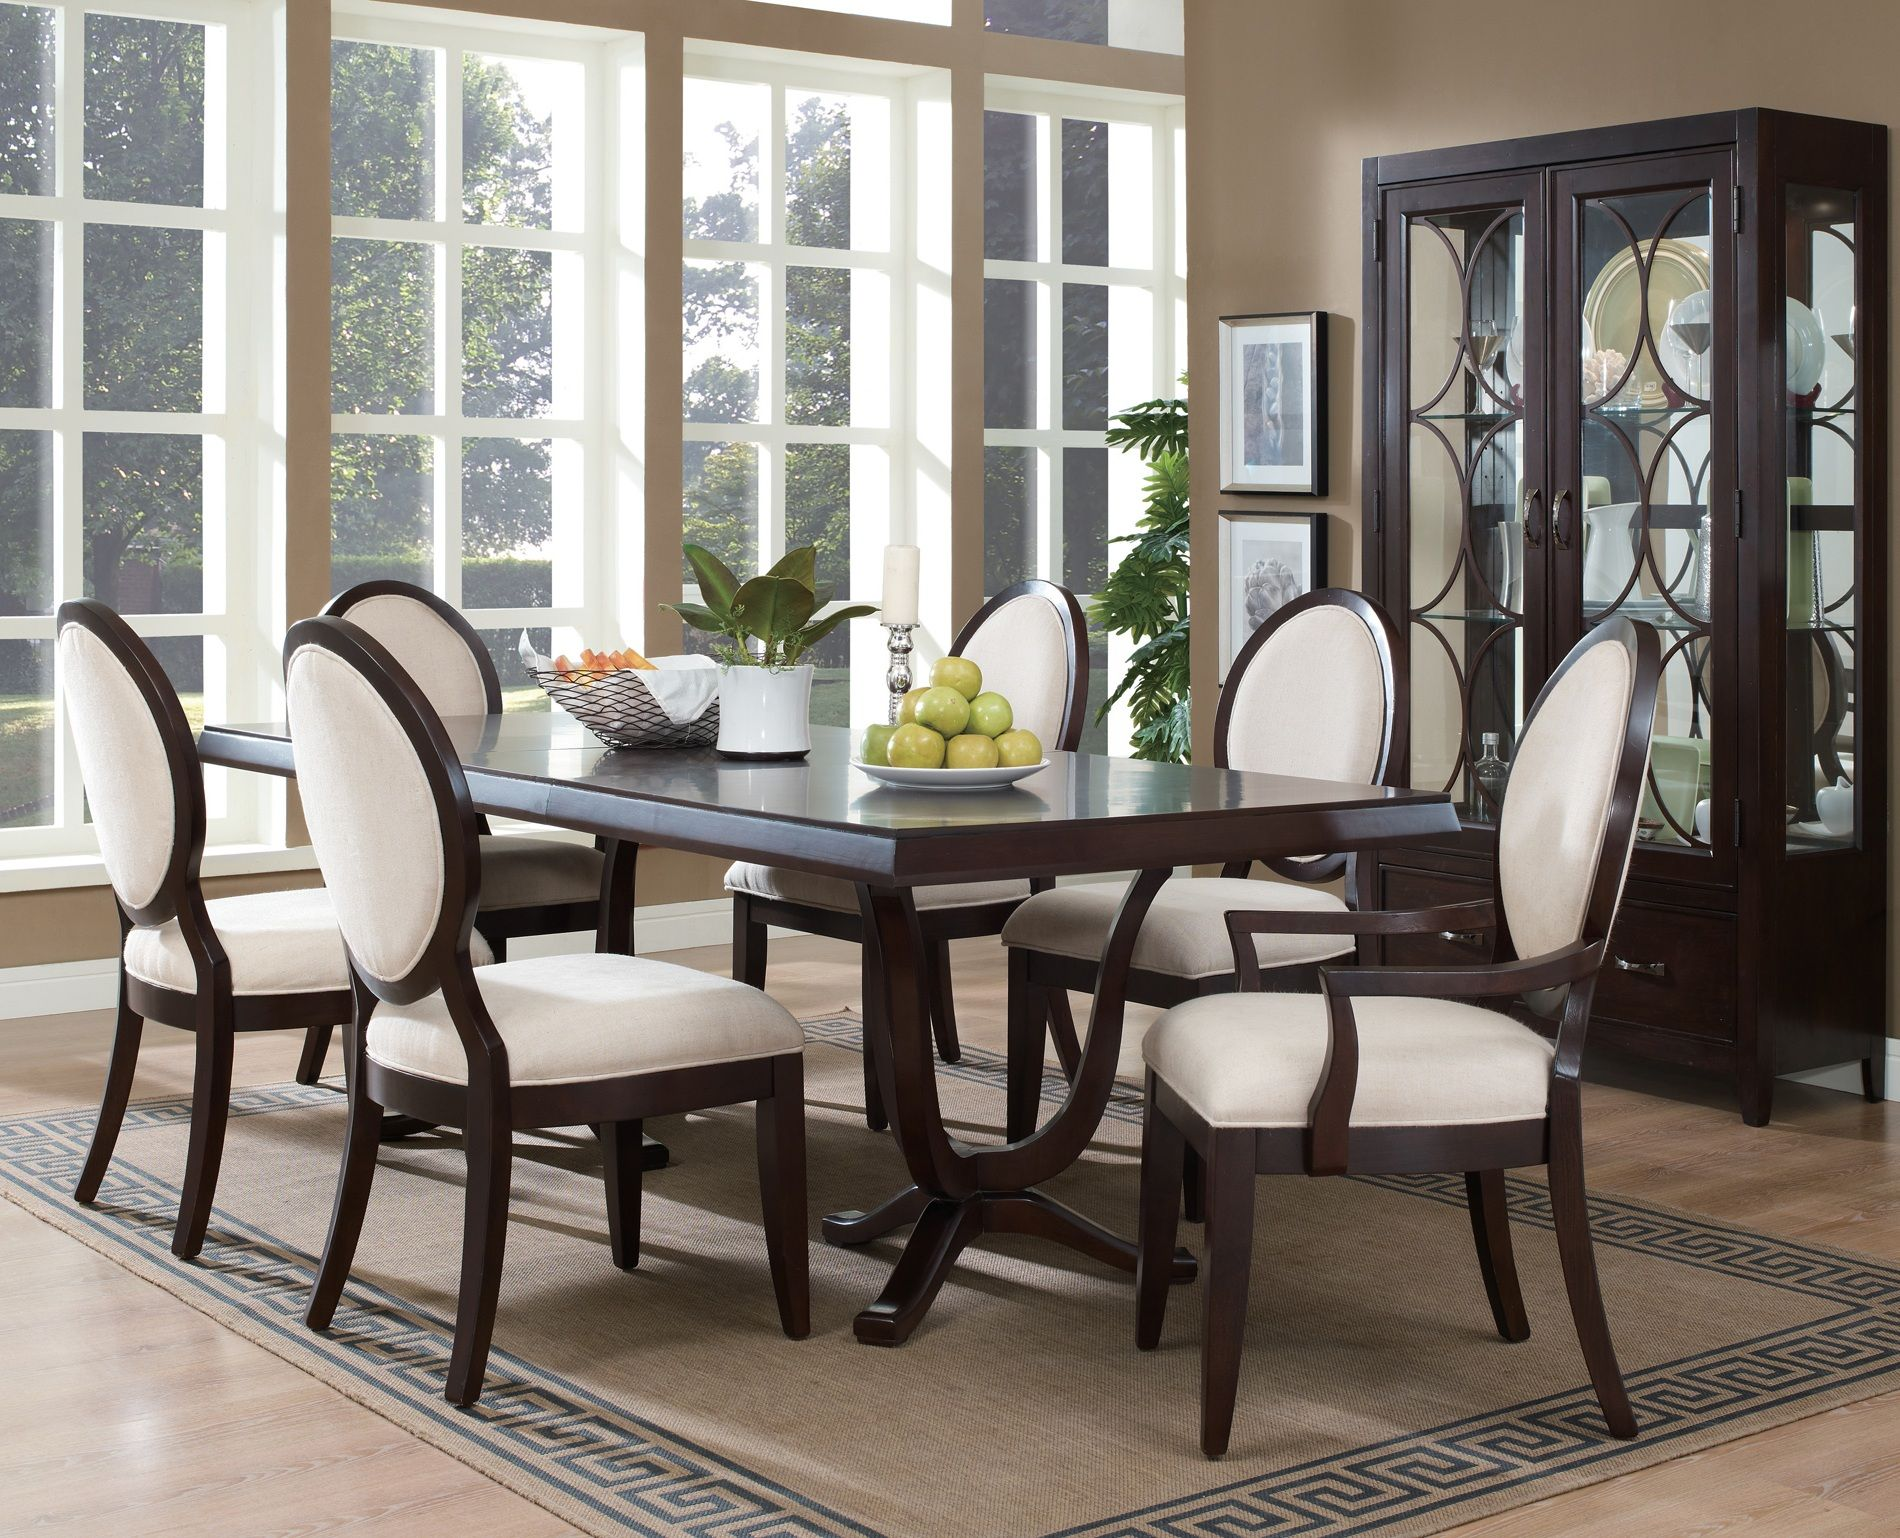 Dining Room Set With China Cabinet Fascinating Dining Room Set Idea With Two Tone Upholstered Chairs